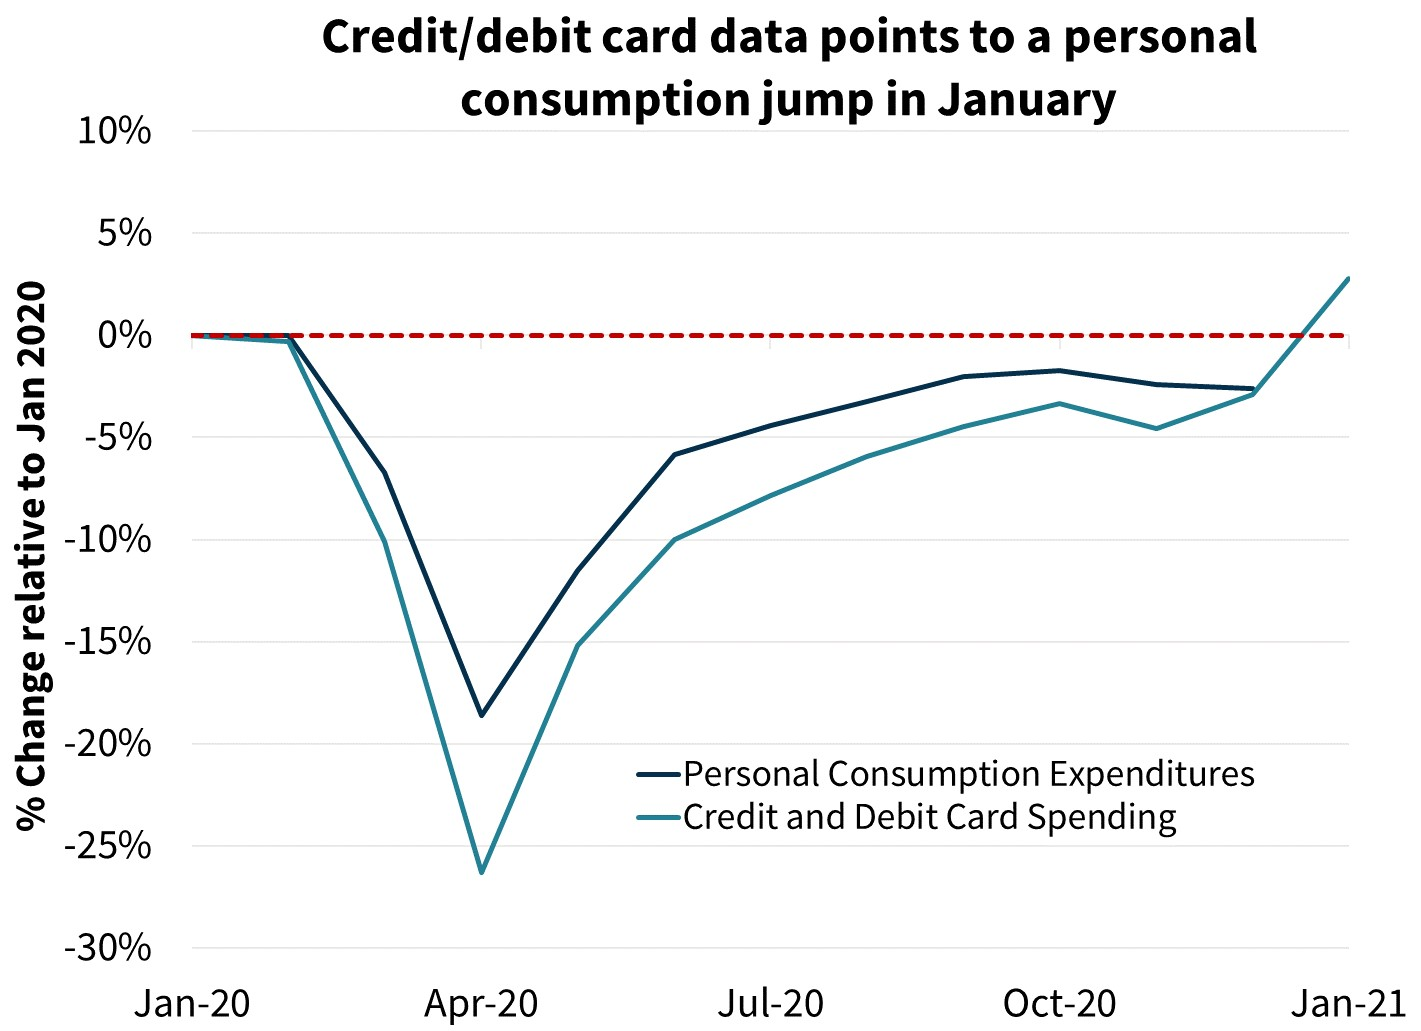 Credit/debit card data points to a personal consumption jump in January